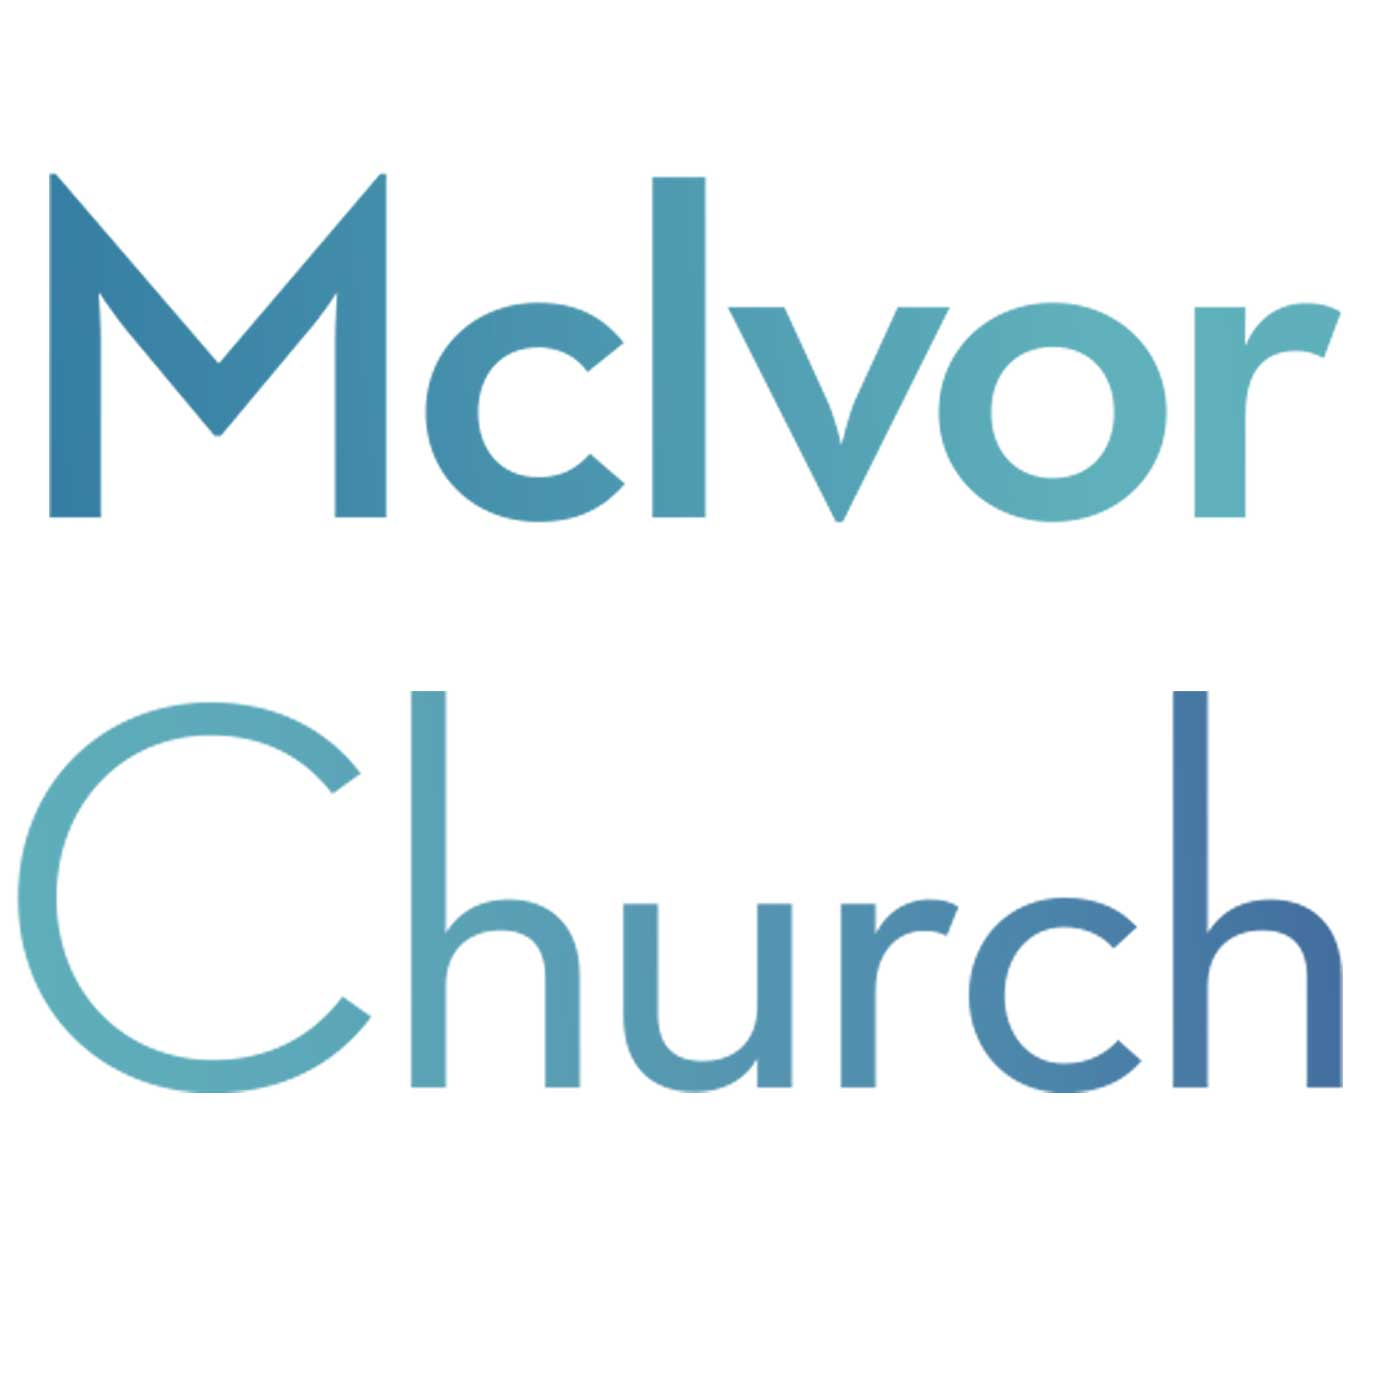 McIvor Church's Weekly Sermons